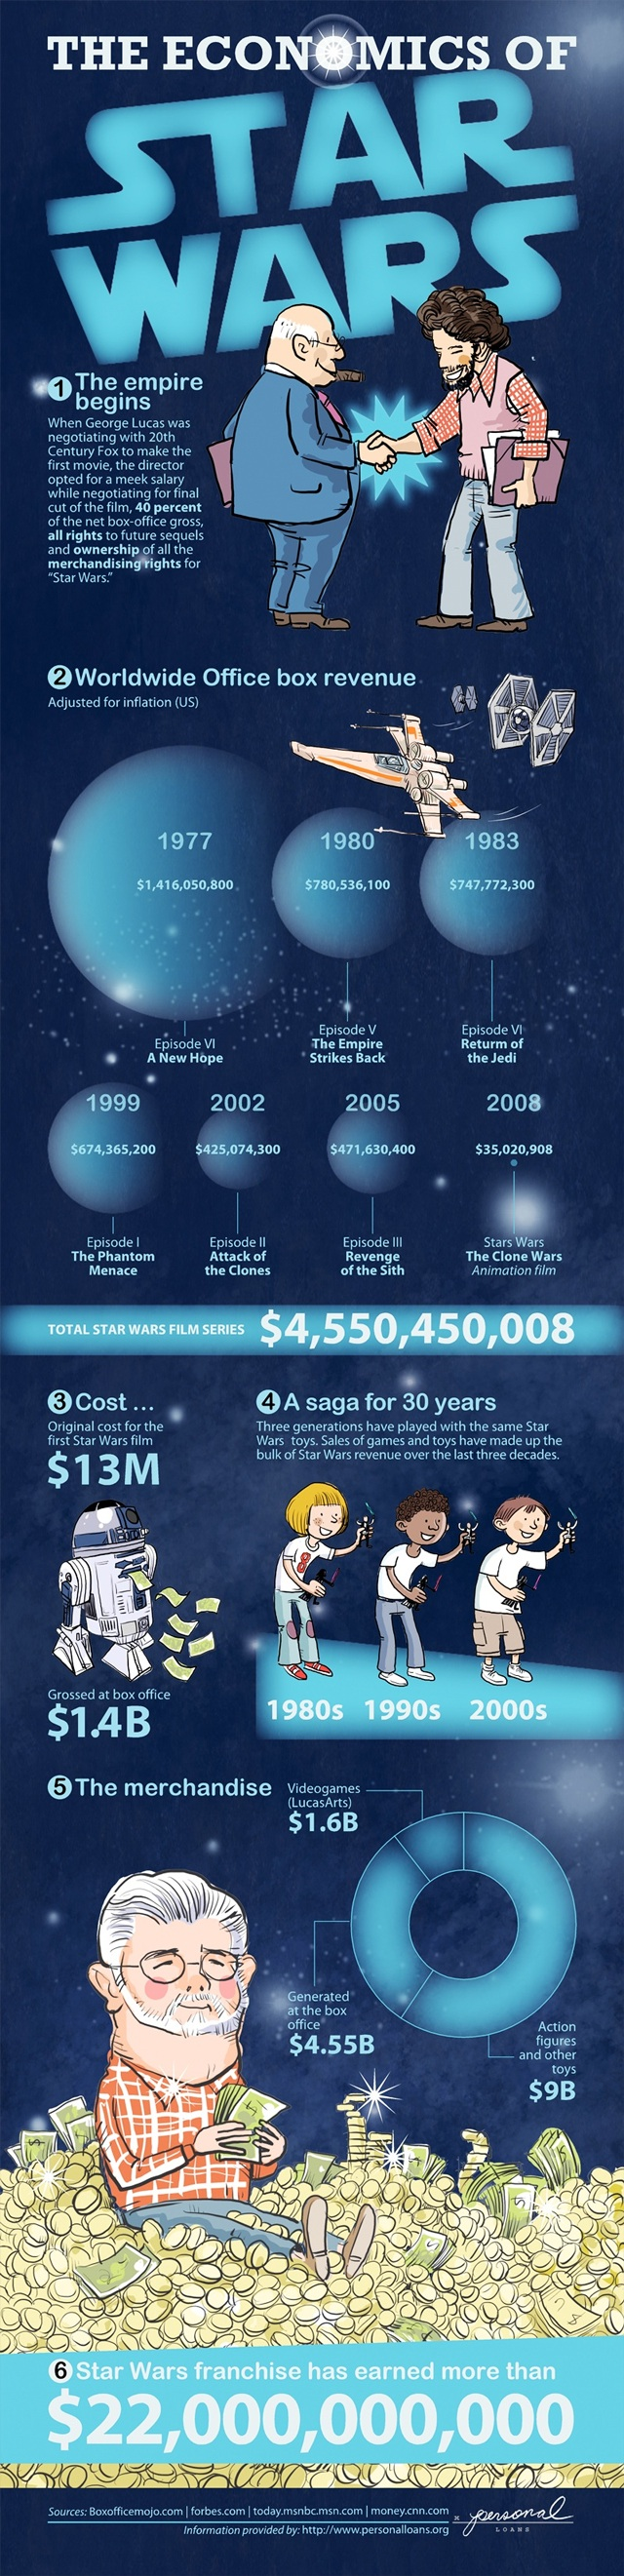 star-wars-economics